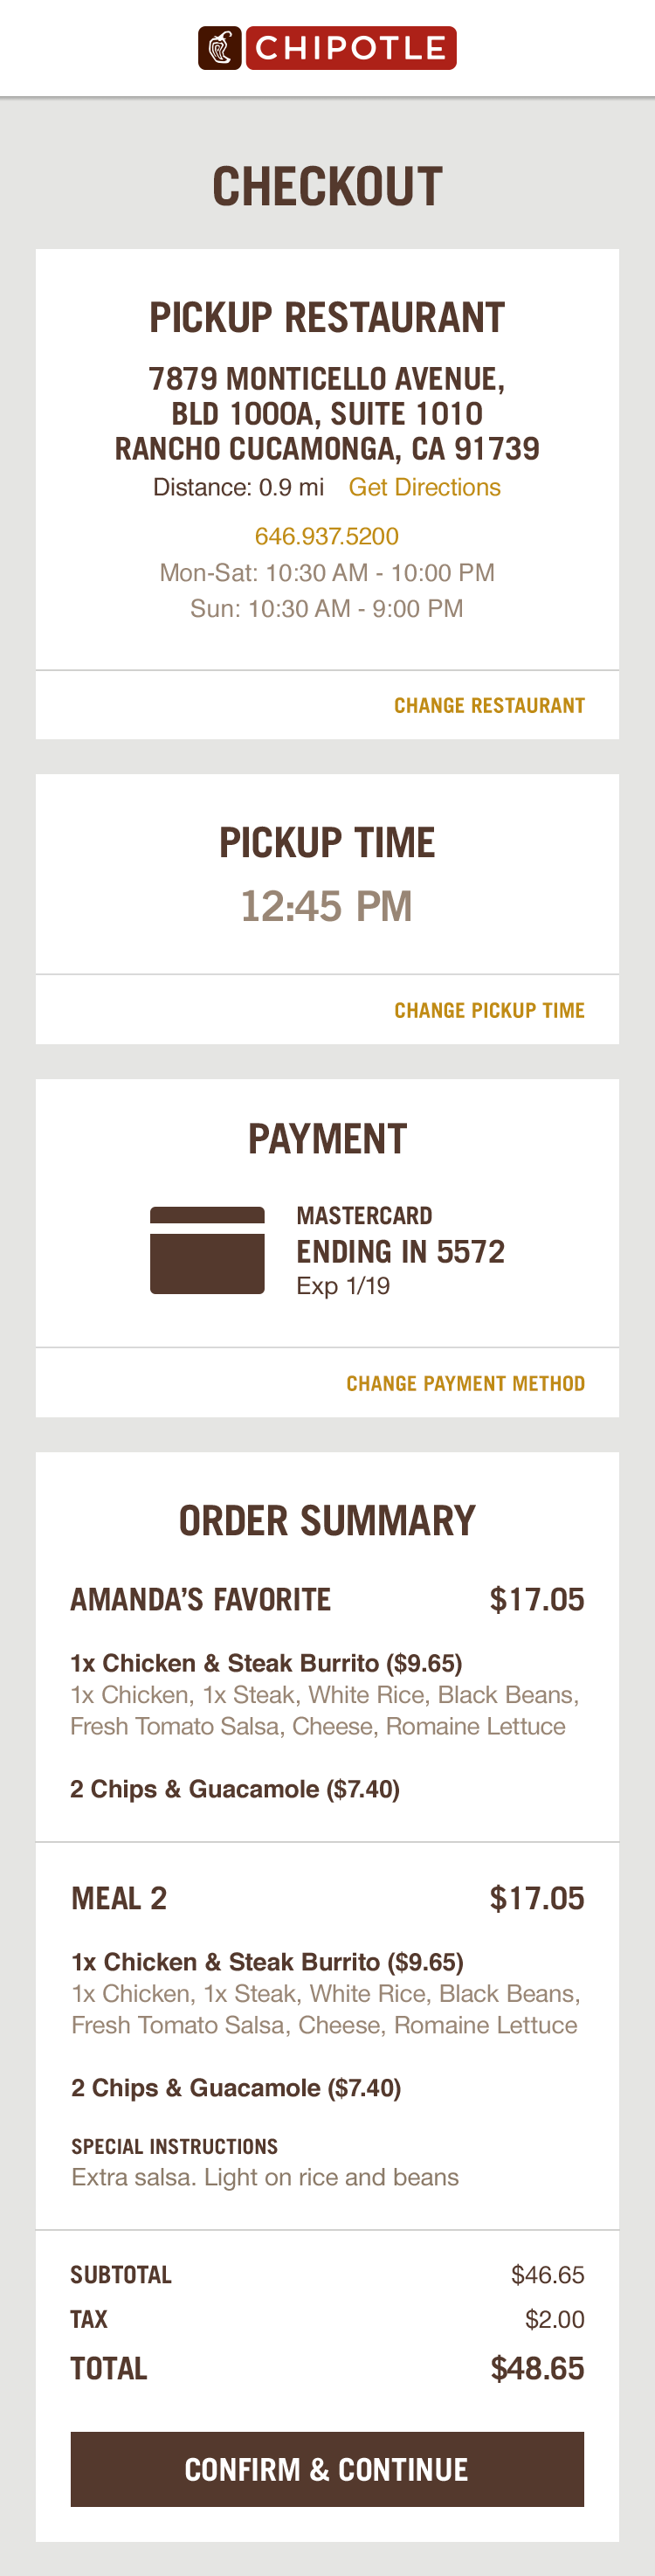 7_ROO_GroupOrder_Mobile_Checkout_Order_Summary.png